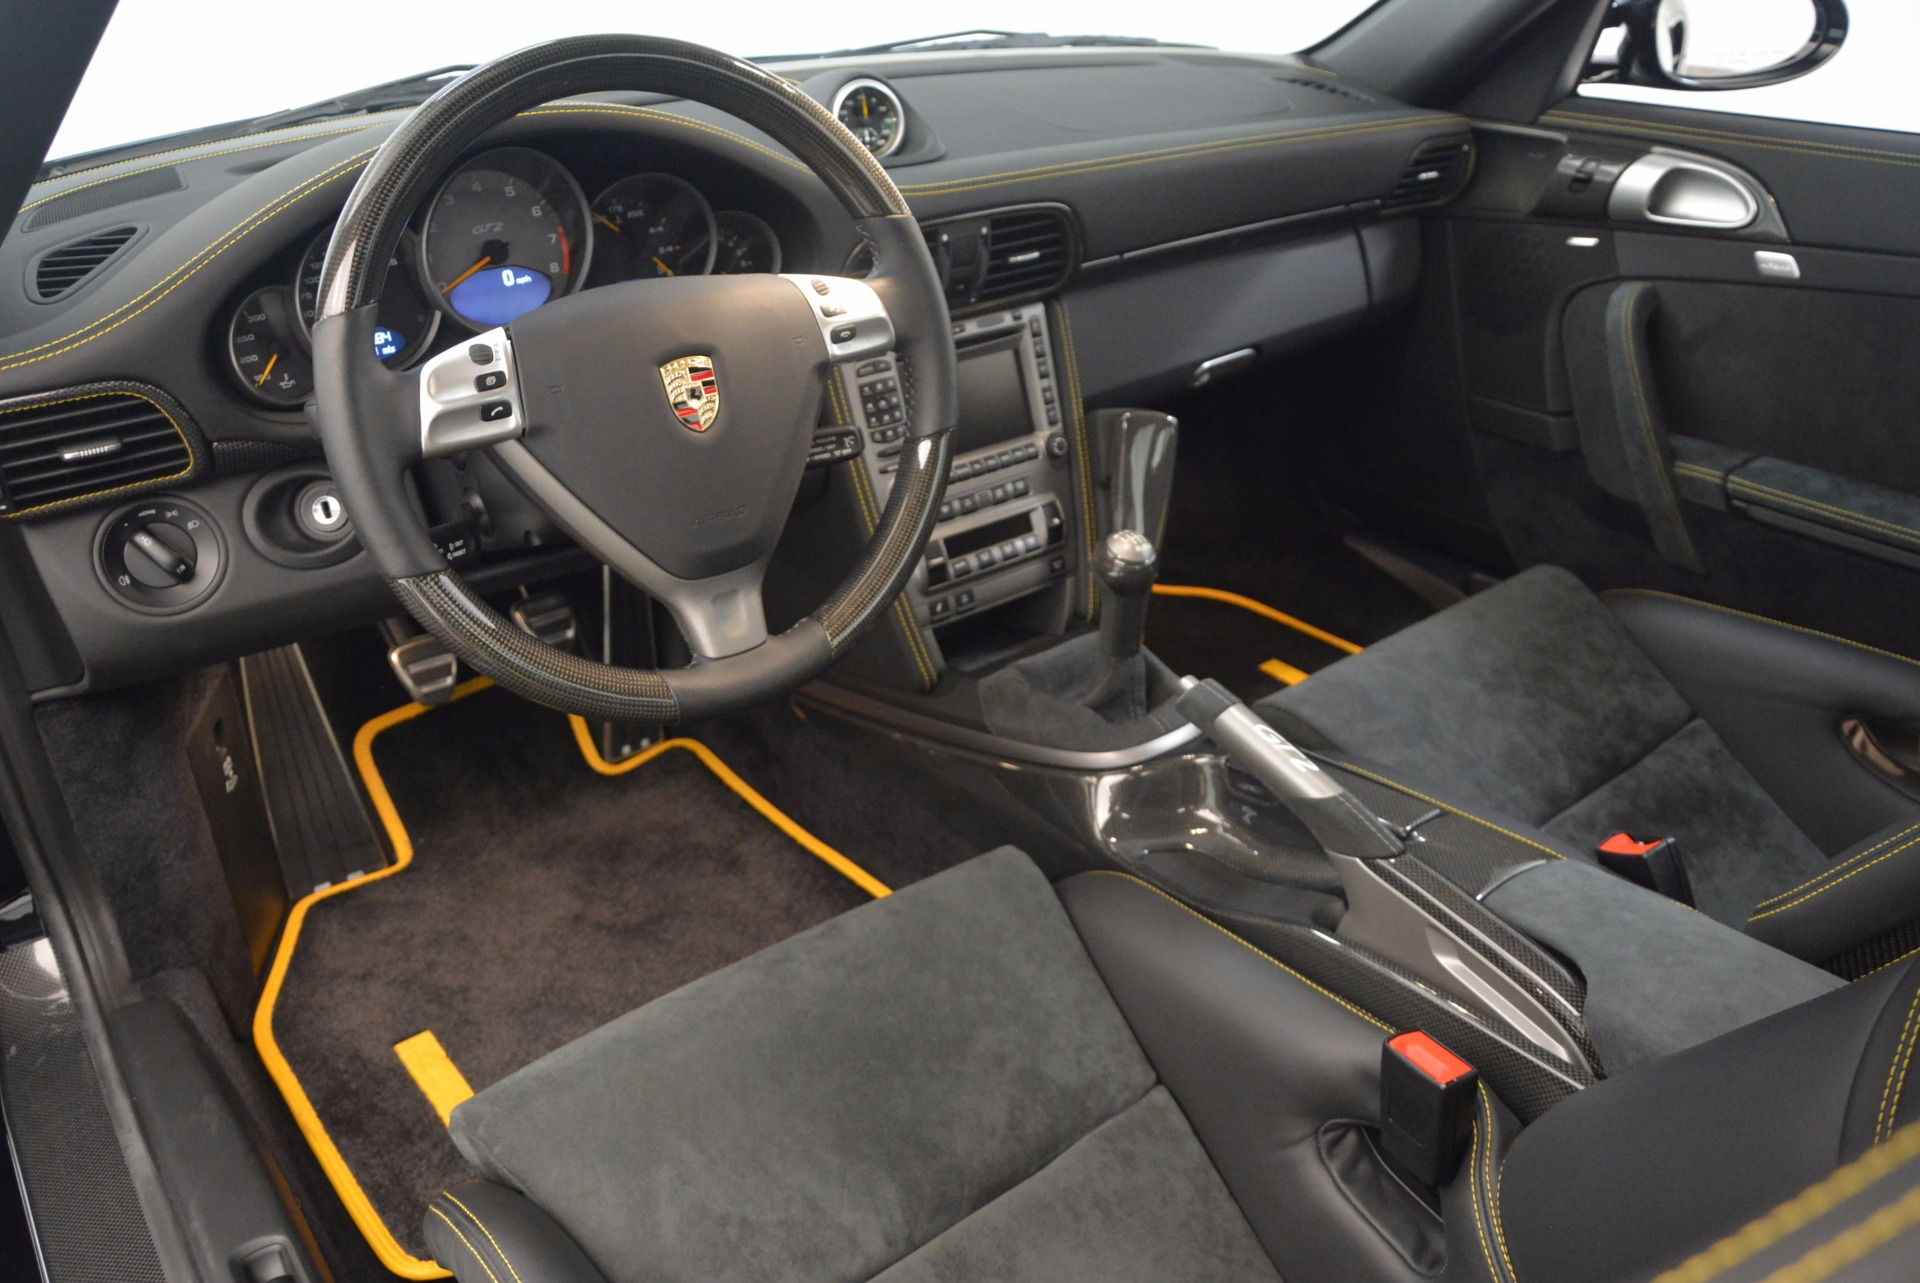 Used 2008 Porsche 911 GT2 For Sale In Greenwich, CT 1400_p13